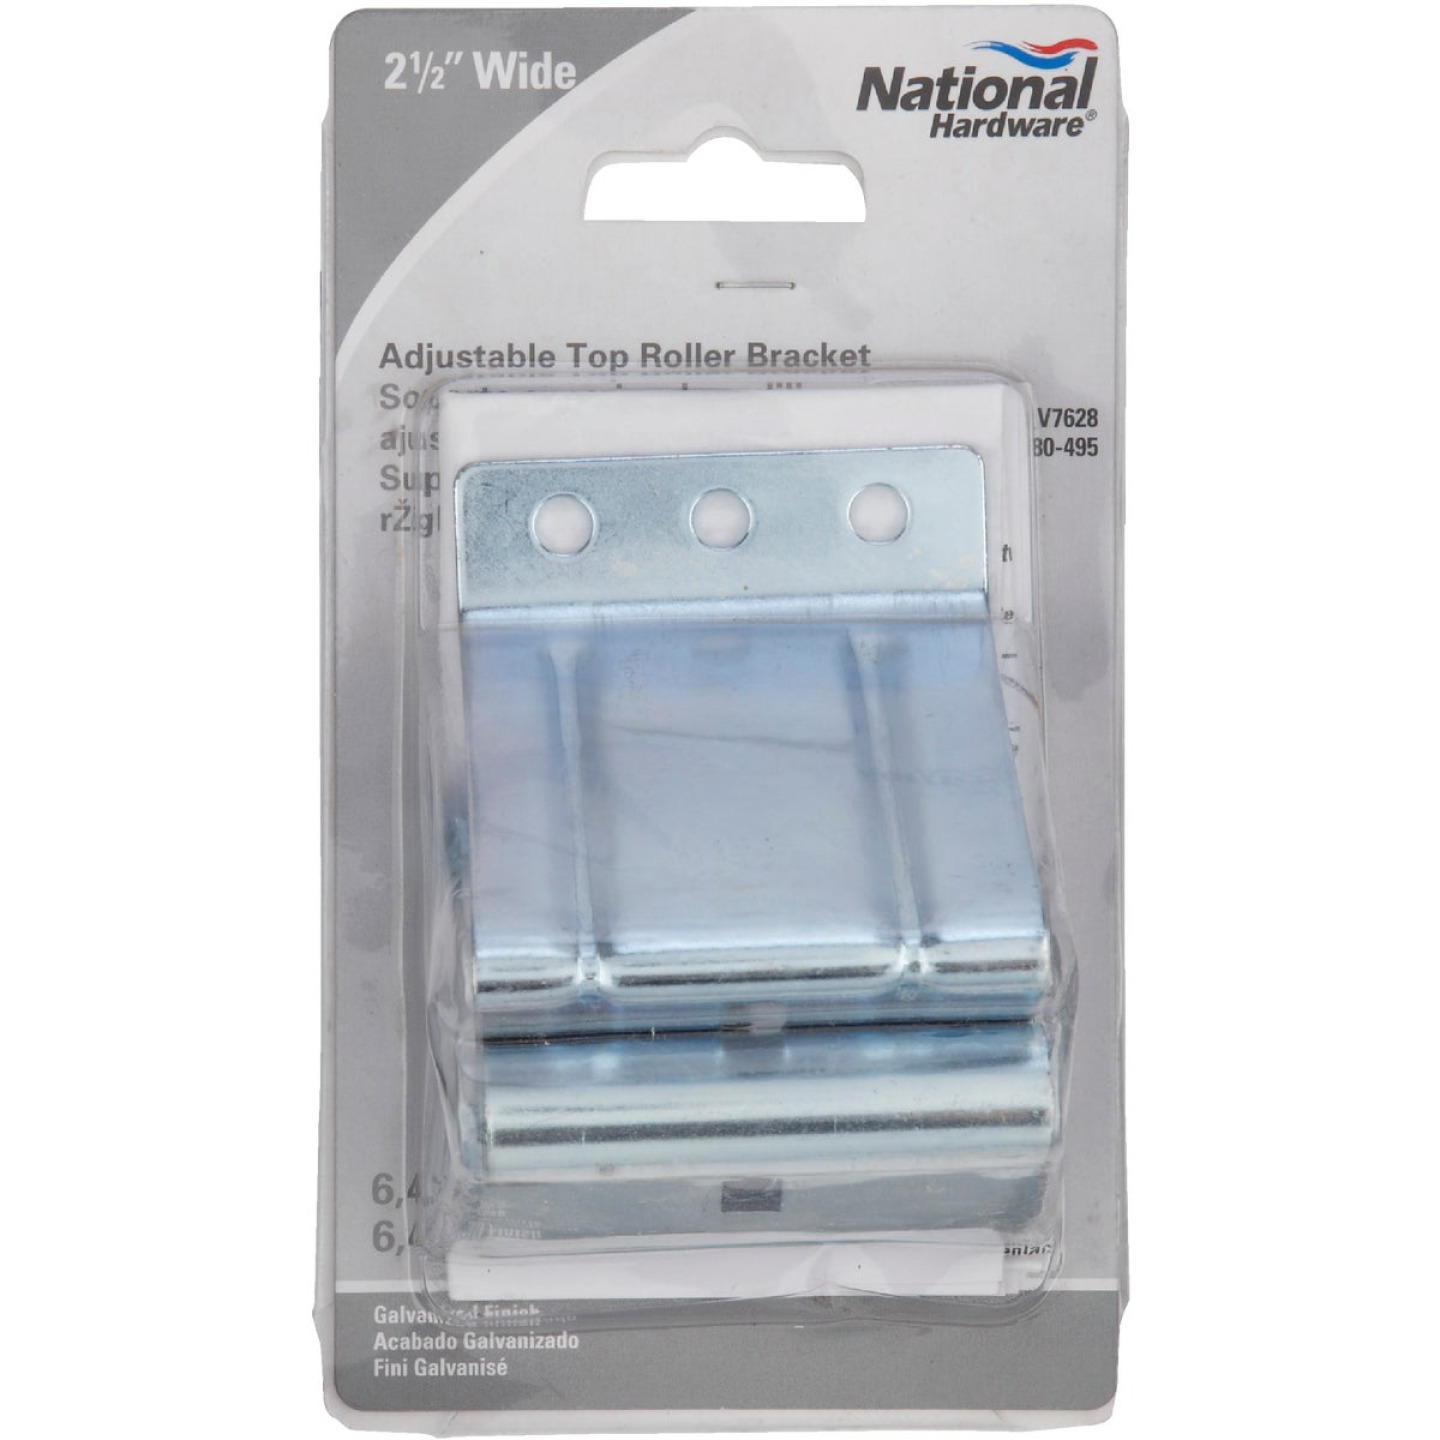 National Garage Door Adjustable Top Roller Bracket Image 2